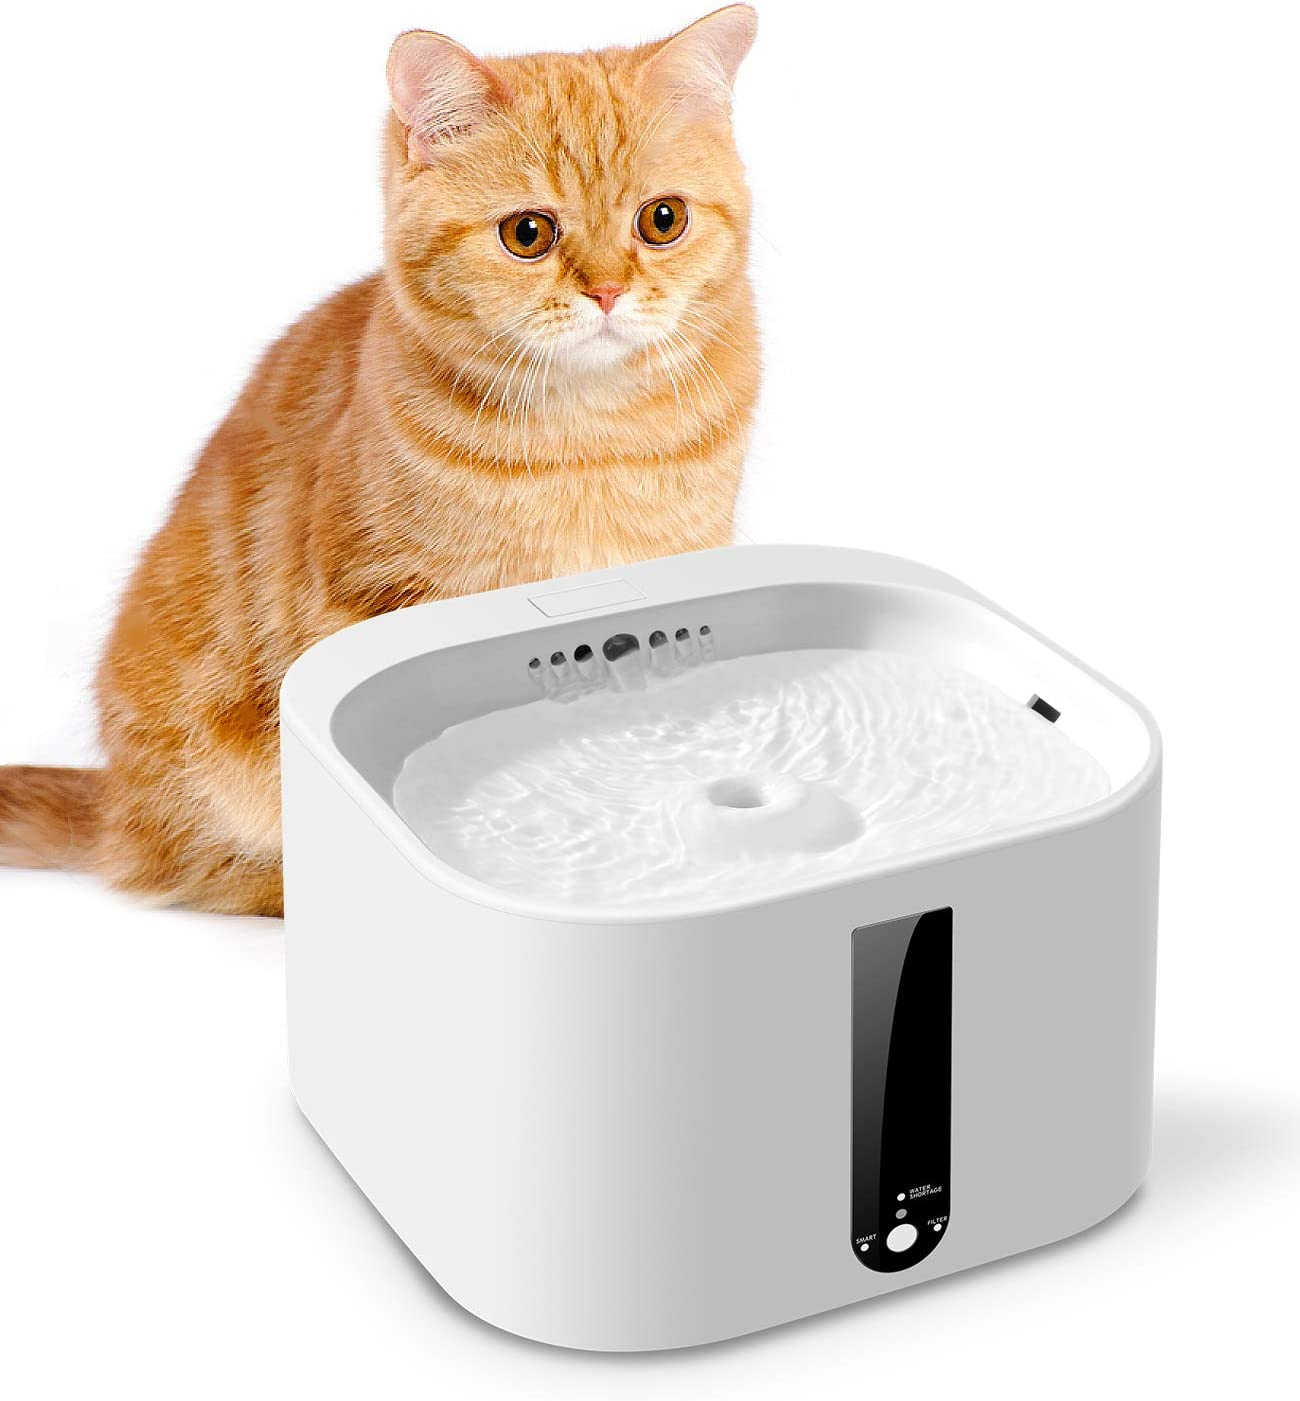 New Shipping Free Shipping Uterip Smart Pet Fountain 70oz Max 78% OFF Automatic 2L Cat Dispenser Water